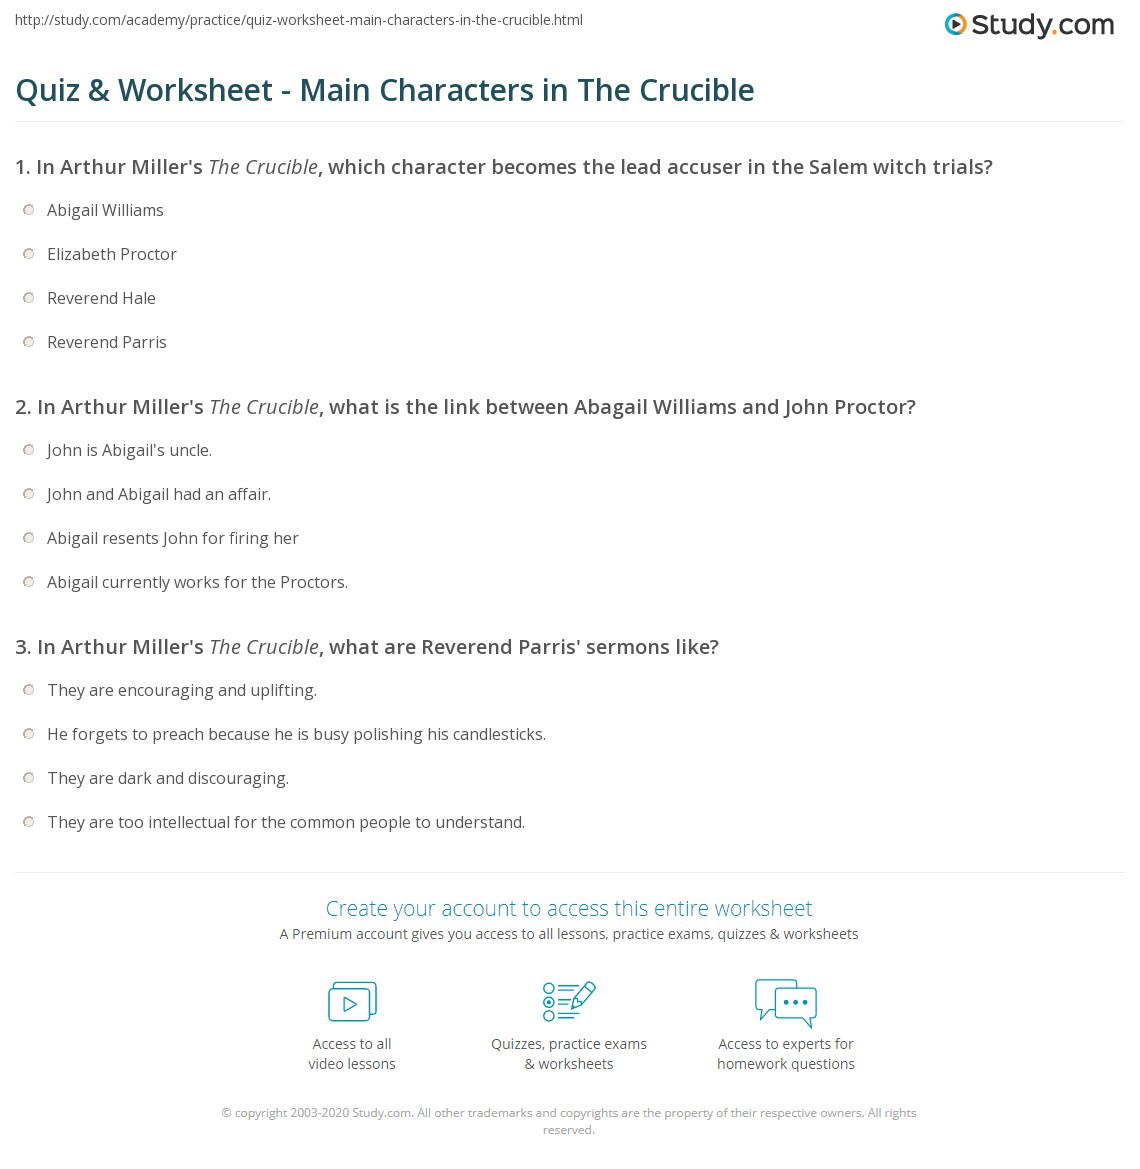 quiz worksheet main characters in the crucible. Black Bedroom Furniture Sets. Home Design Ideas